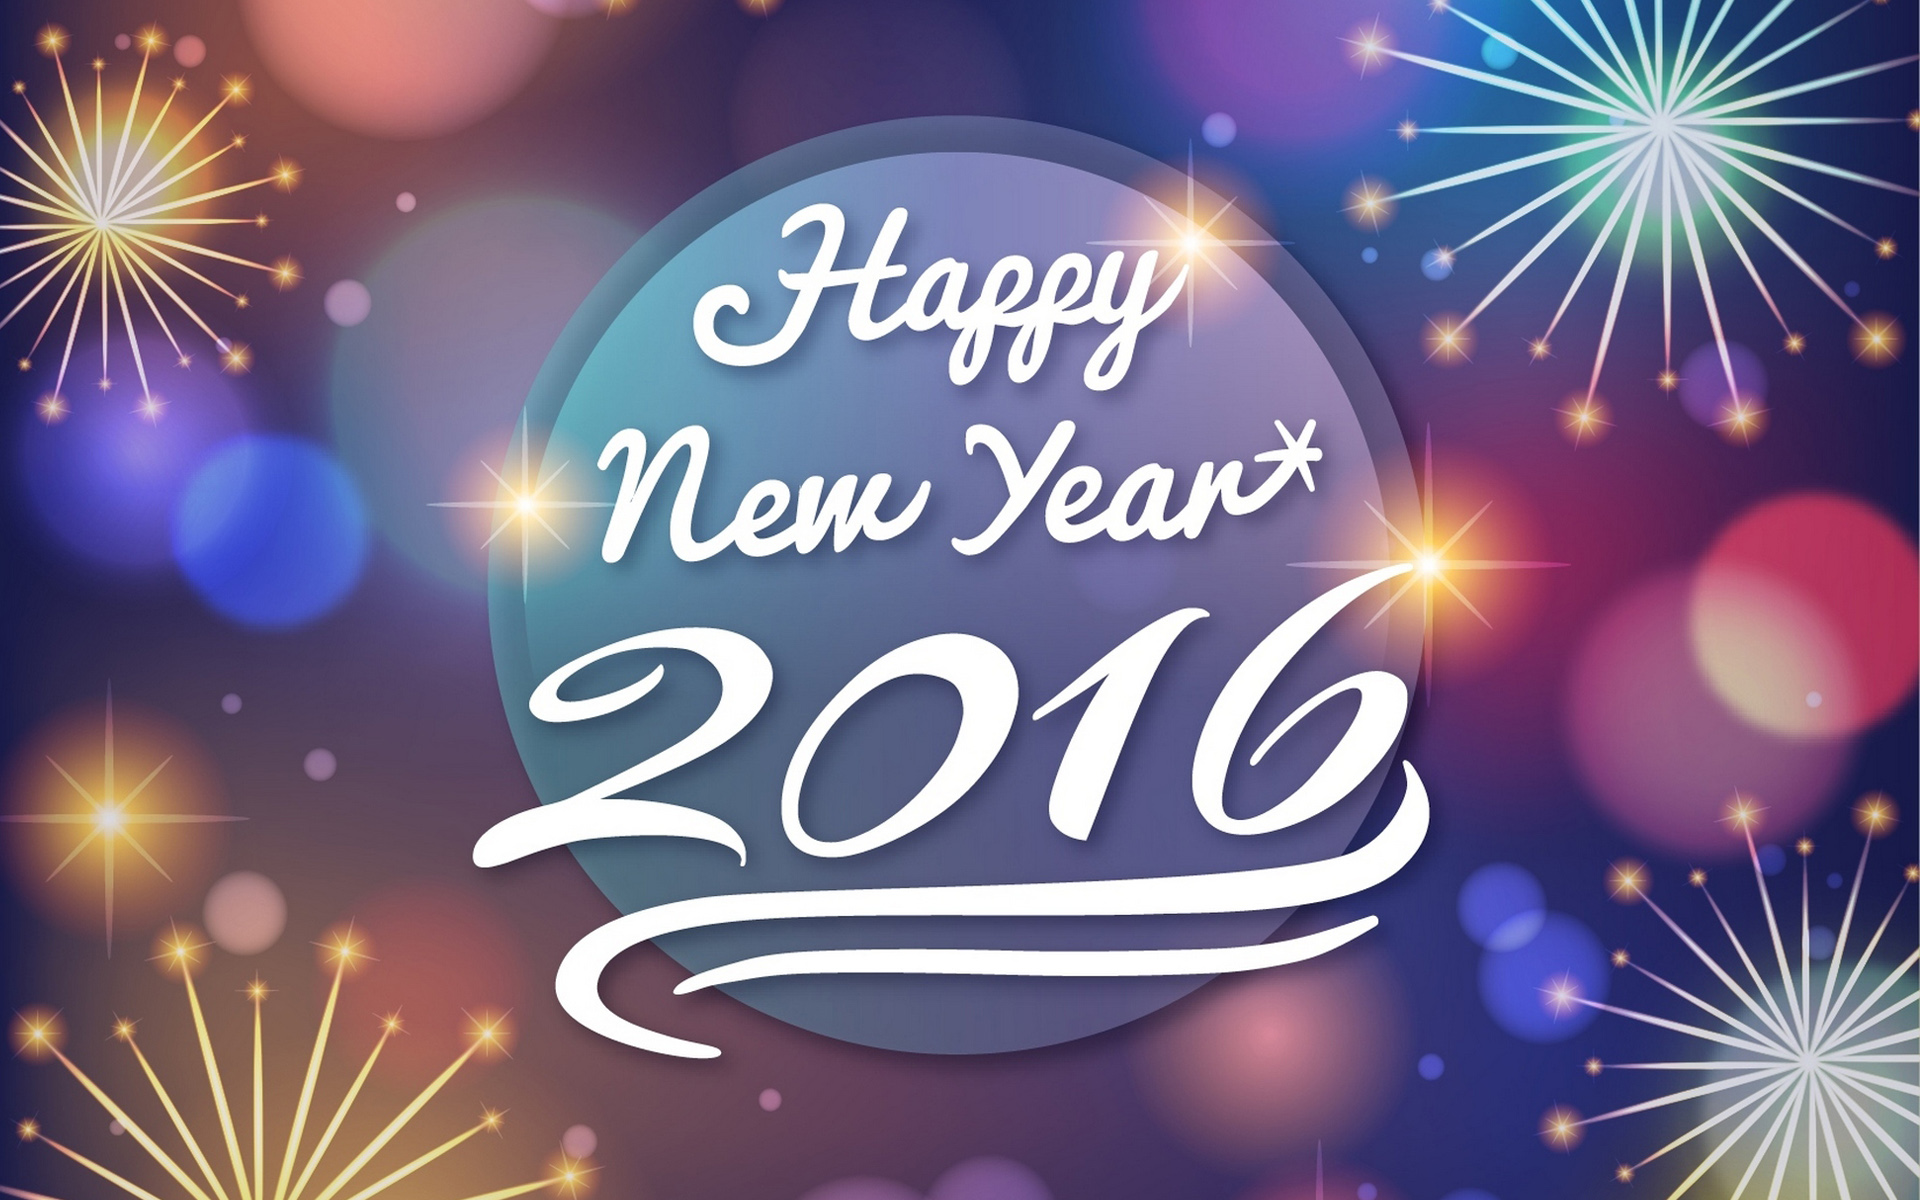 happy new year 2016 wallpapers hd wallpapers 1920x1200